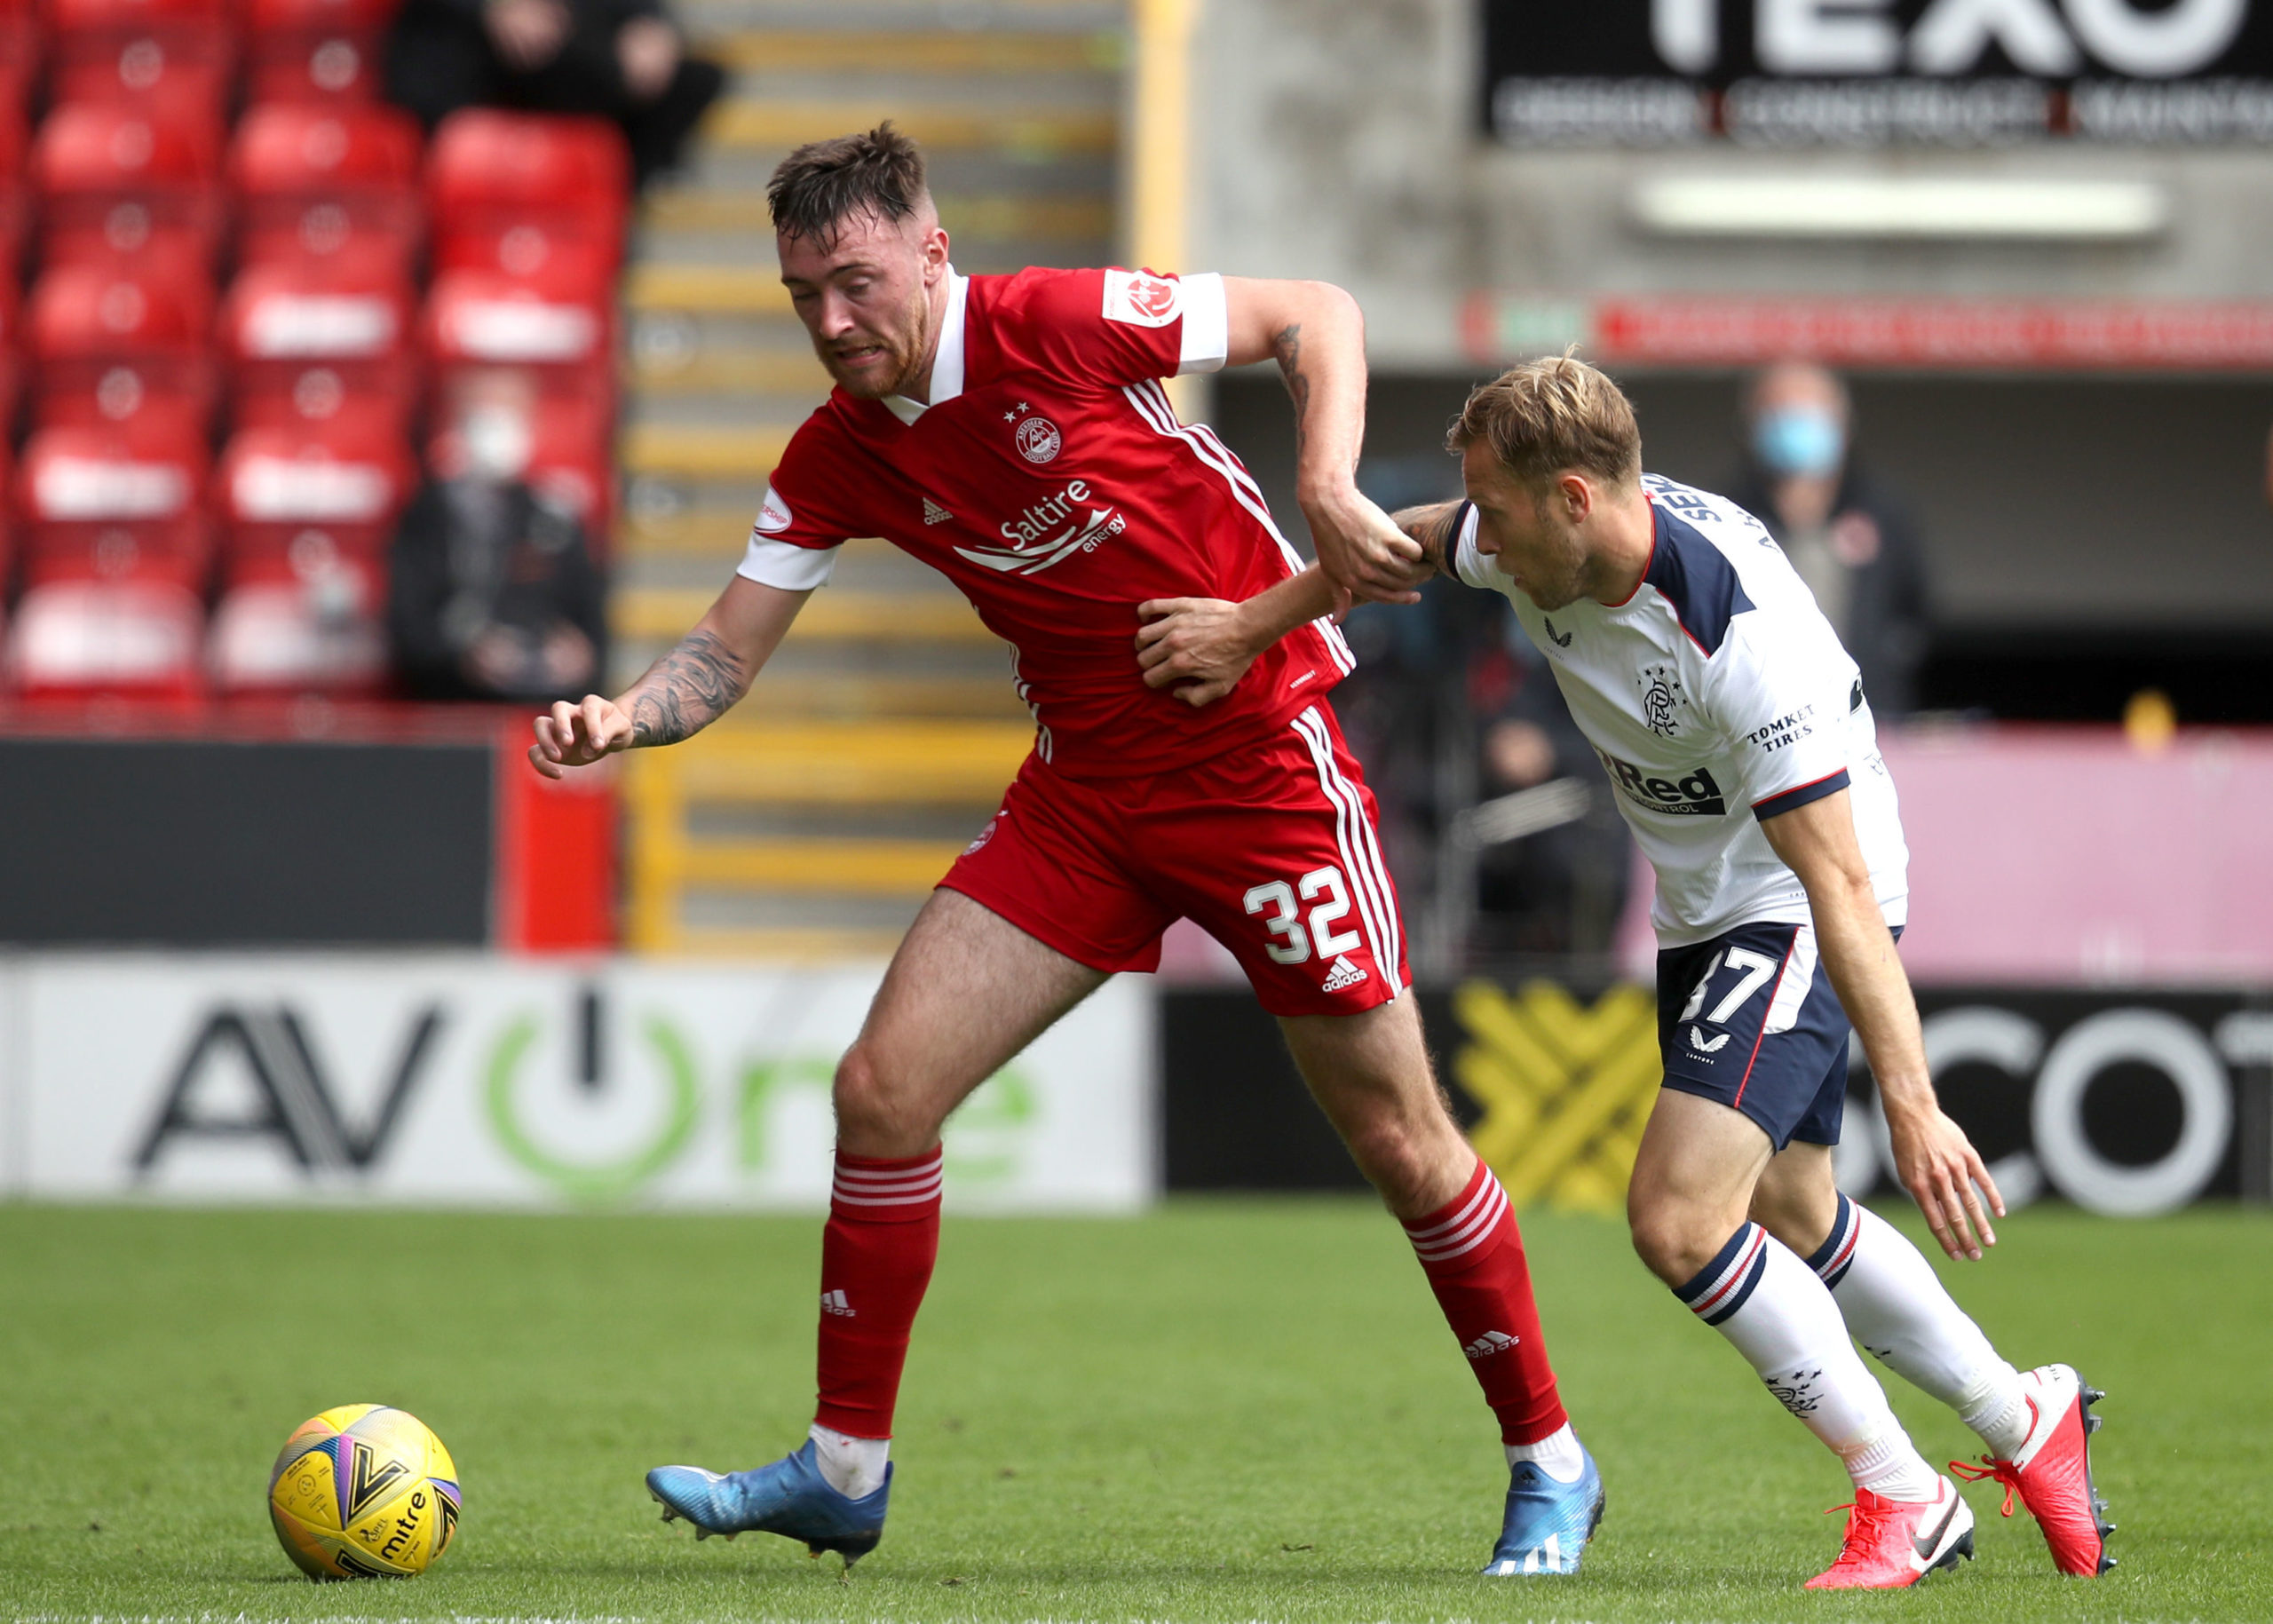 Ryan Edmondson's physicality helped Aberdeen get up the pitch.